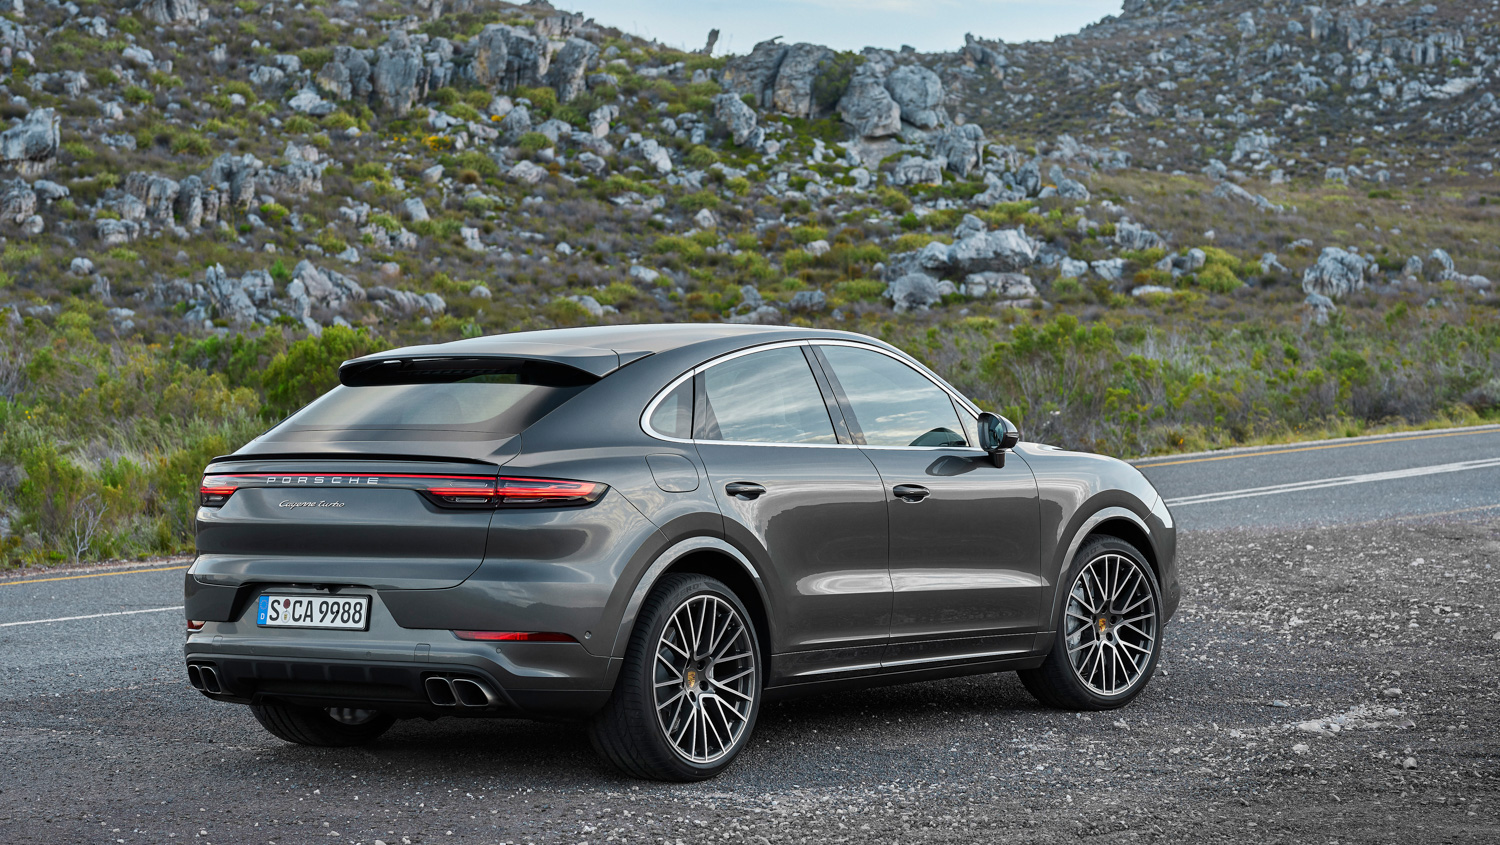 Porsche Cayenne Coupé 3/4 rear rocks